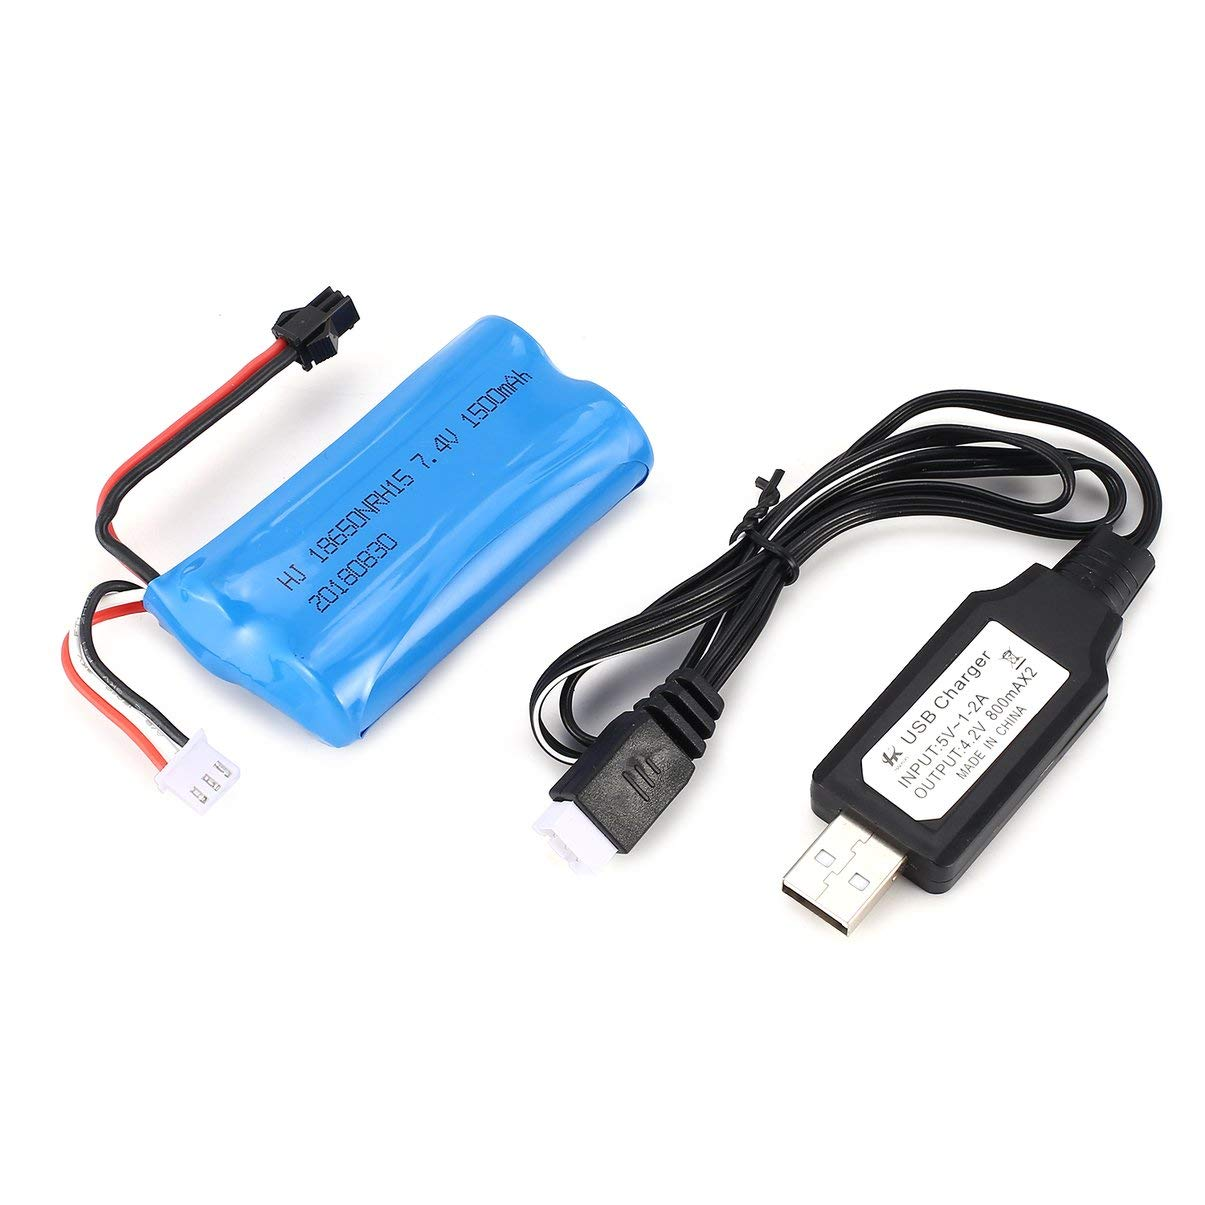 7.4V 1500mAh SM Plug Rechargeable Li-ion Battery with USB Charger for RC Boat Skytech H100 Syma Q1 Spare Parts Accessories JullyeleITgant